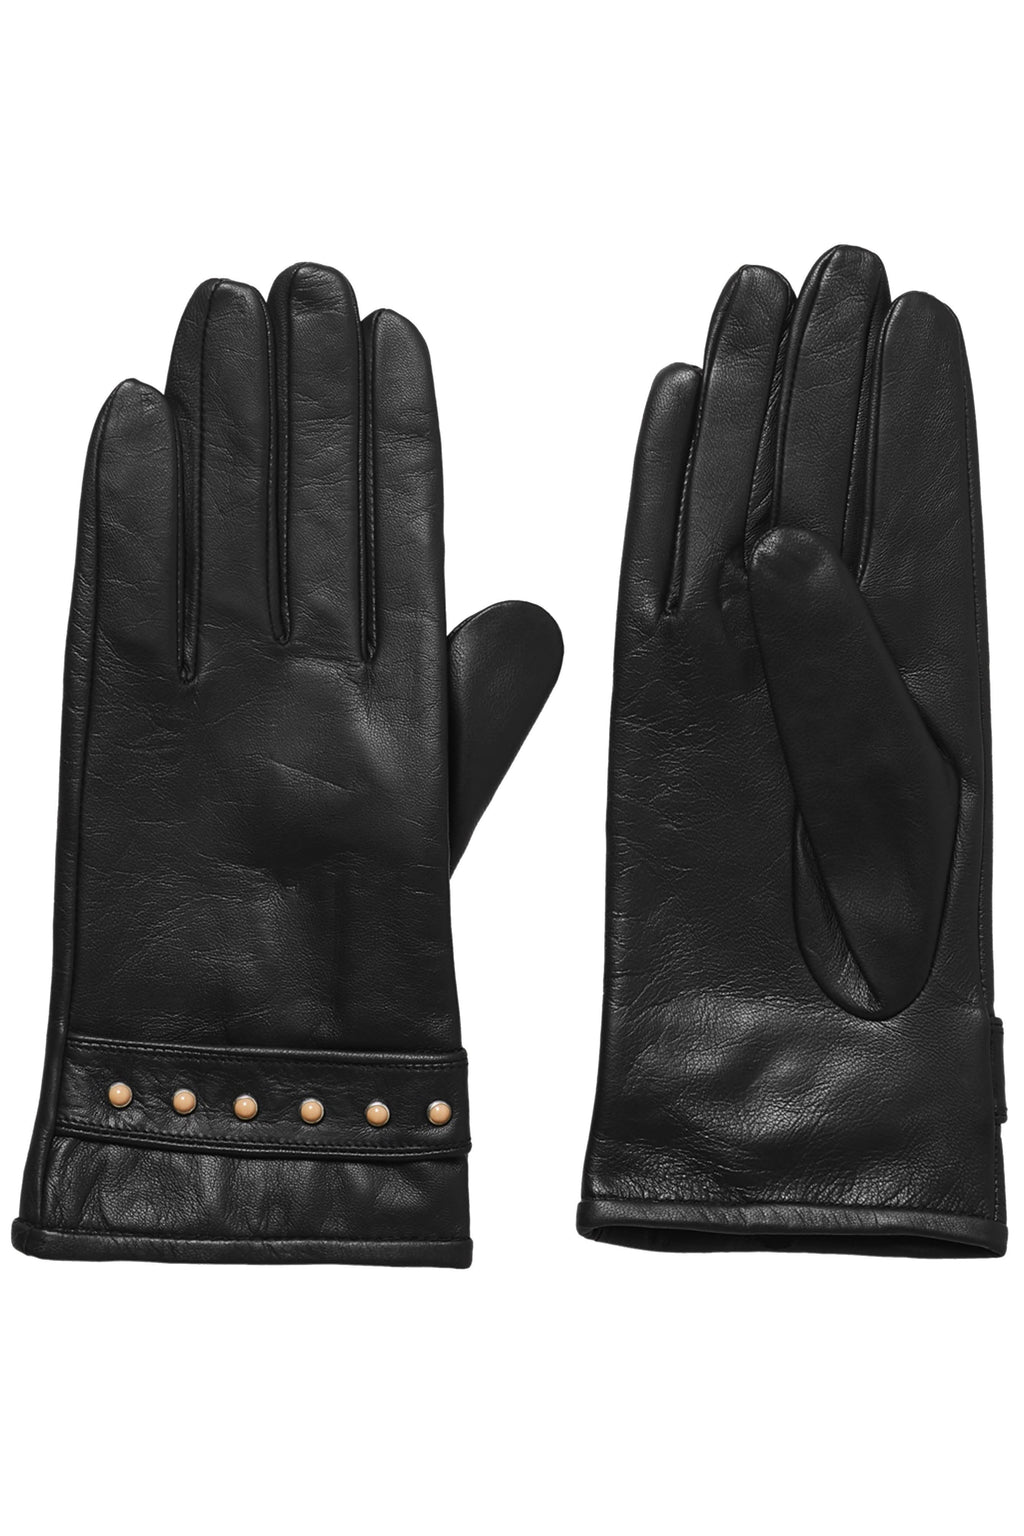 SCOTCH & SODA | Leather Glove + Blush Rivets